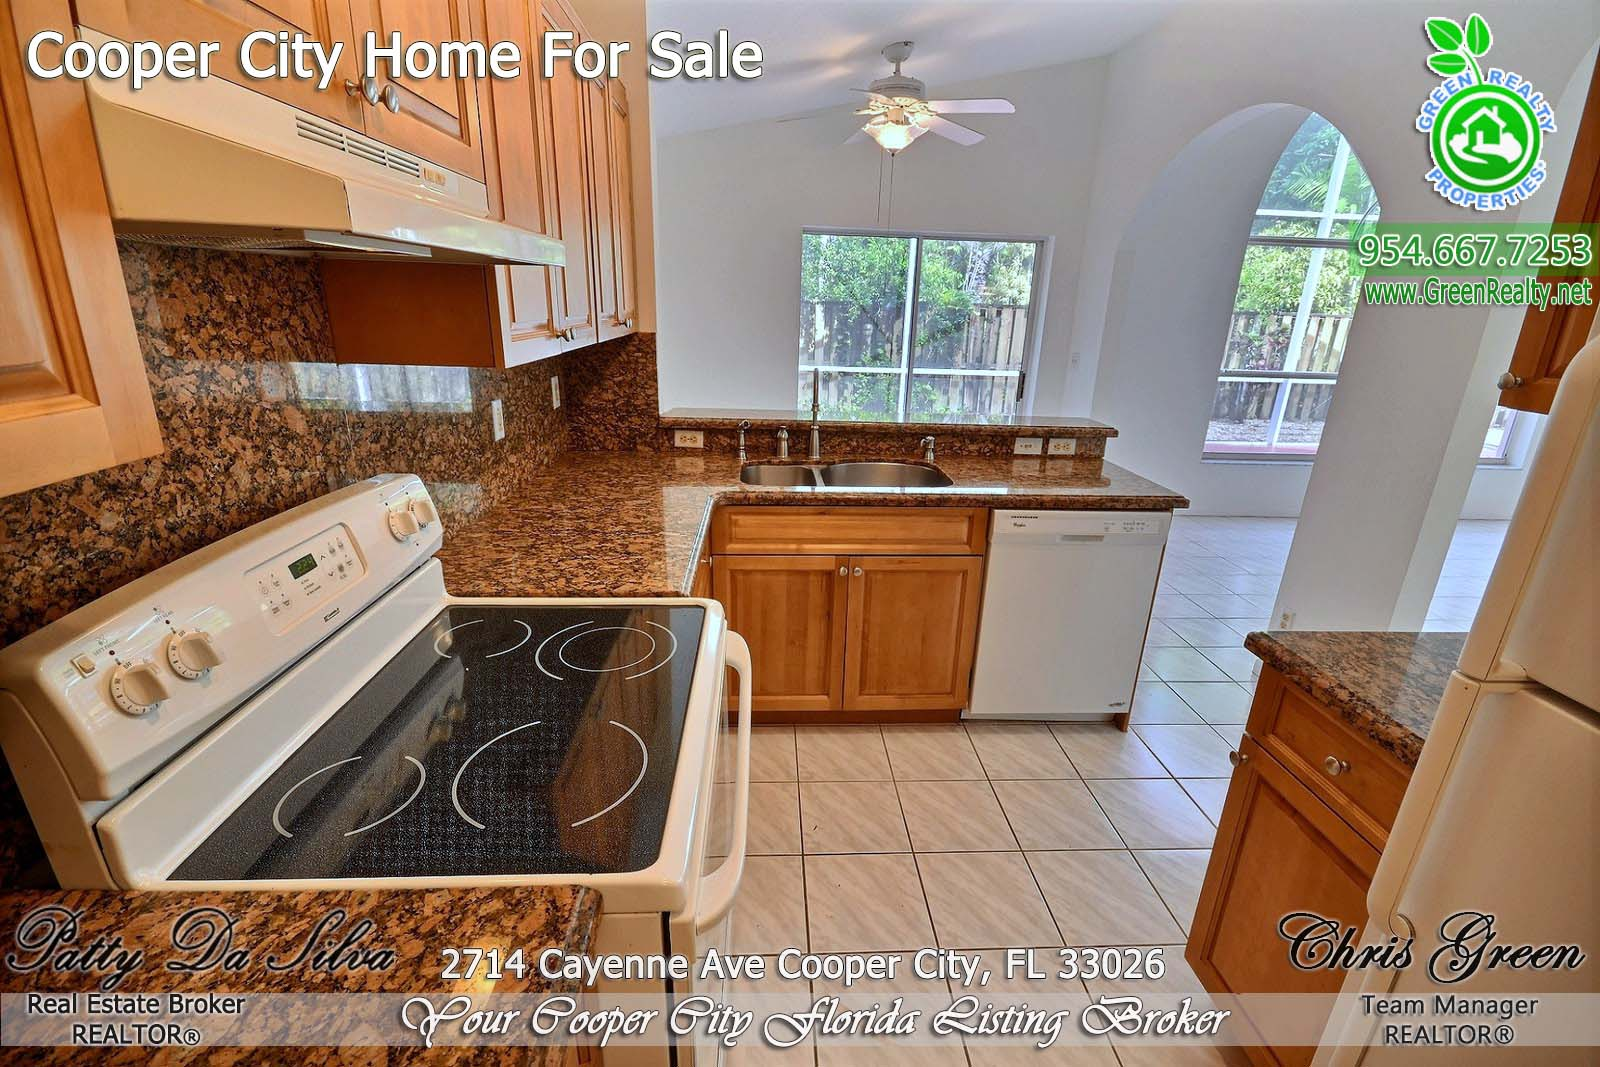 4 Embassy Lakes Cooper City Homes For Sale (1)